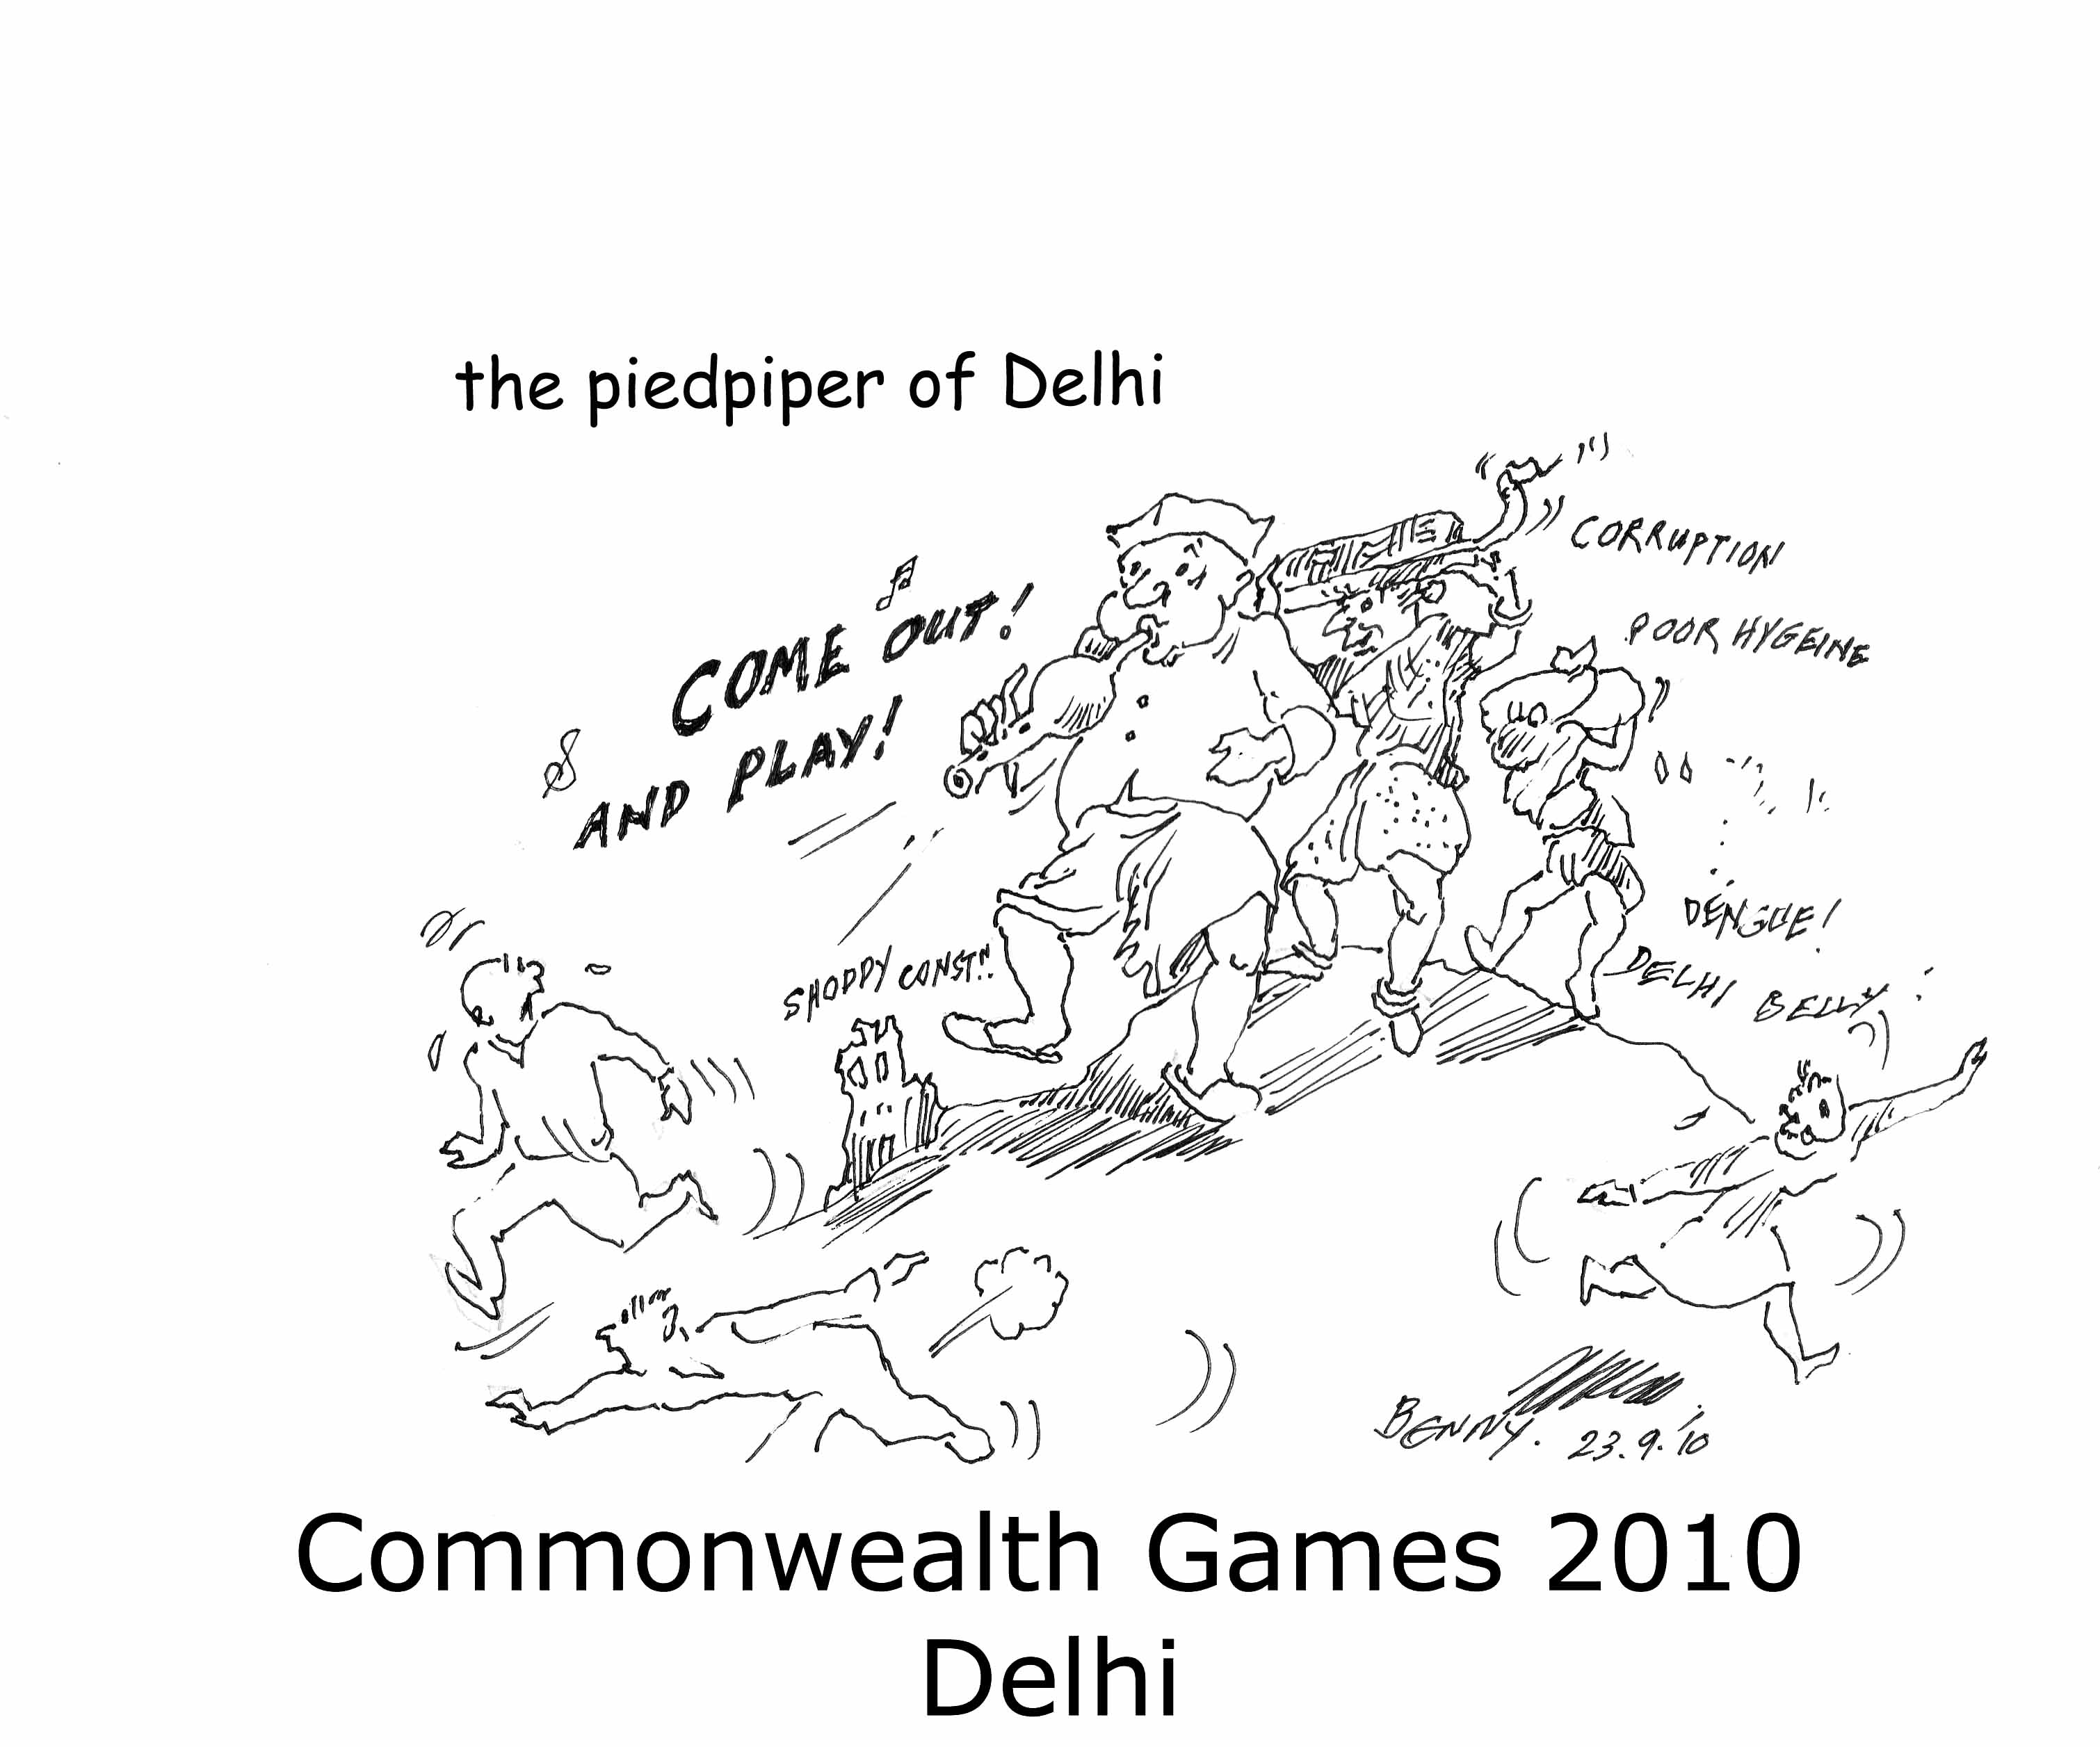 school essay on commonwealth games 2010 Indian businessman azim premji called the 2010 commonwealth games a drain on public funds and said that hosting the high-expense games in india is not justified.